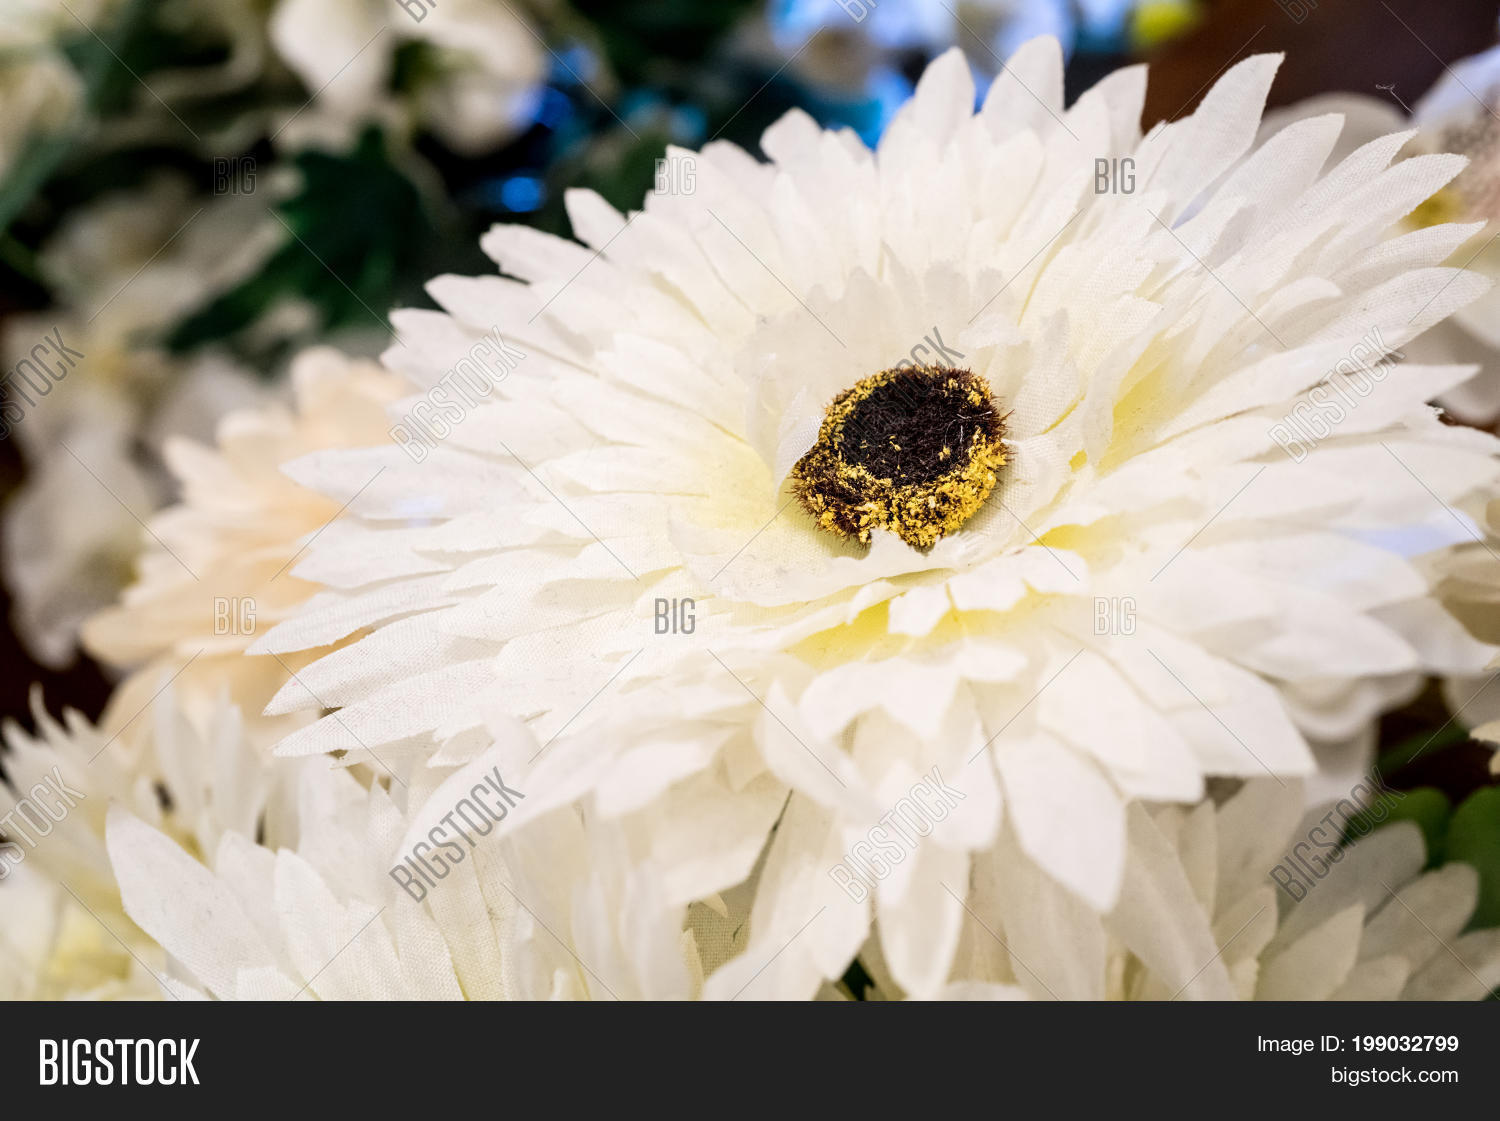 Artificial Daisy Flower Made Silk Image Photo Bigstock